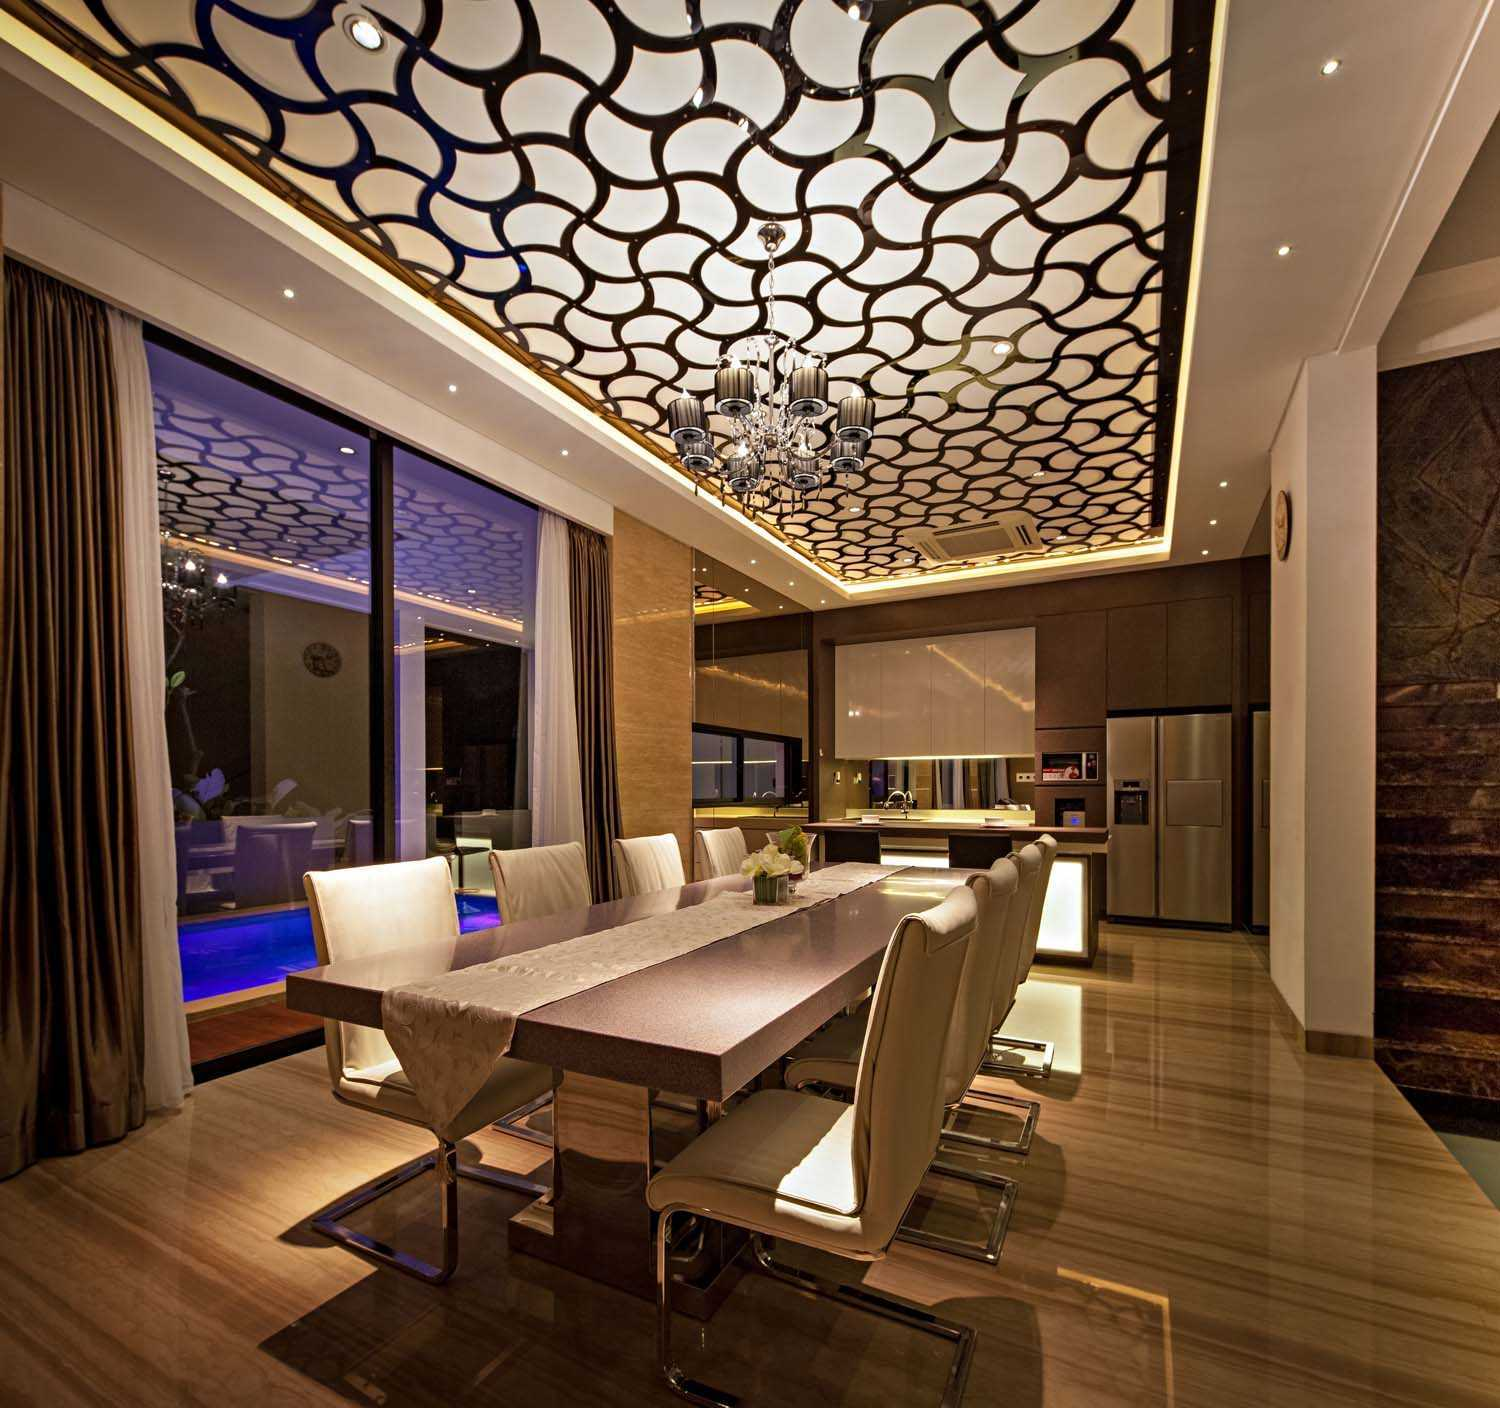 Dp+Hs Architects F+W House Jakarta, Indonesia Jakarta, Indonesia Dining Area Modern  8530